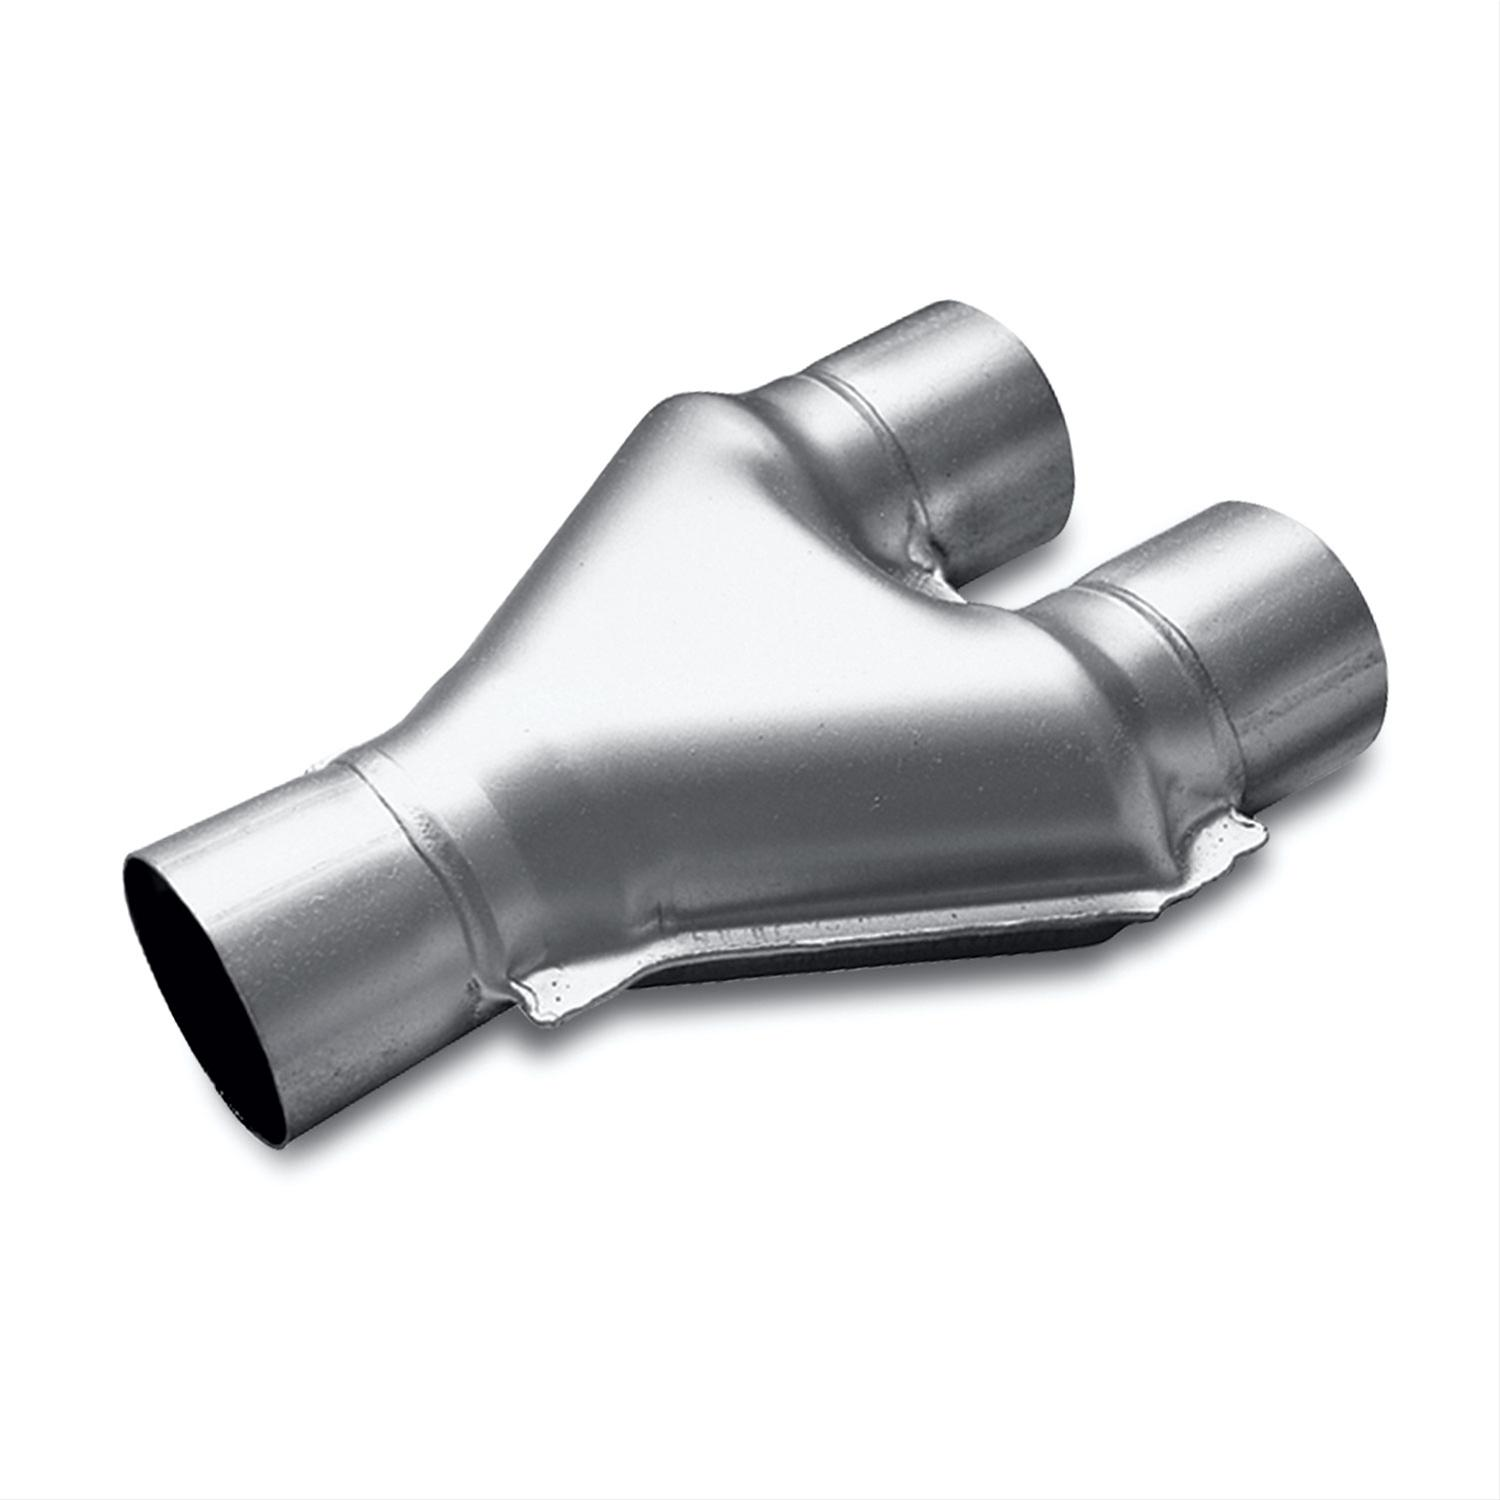 MagnaFlow Y-Pipe Transitions 10758 - Free Shipping on Orders Over $99 at Summit Racing  sc 1 st  Summit Racing & MagnaFlow Y-Pipe Transitions 10758 - Free Shipping on Orders Over ...